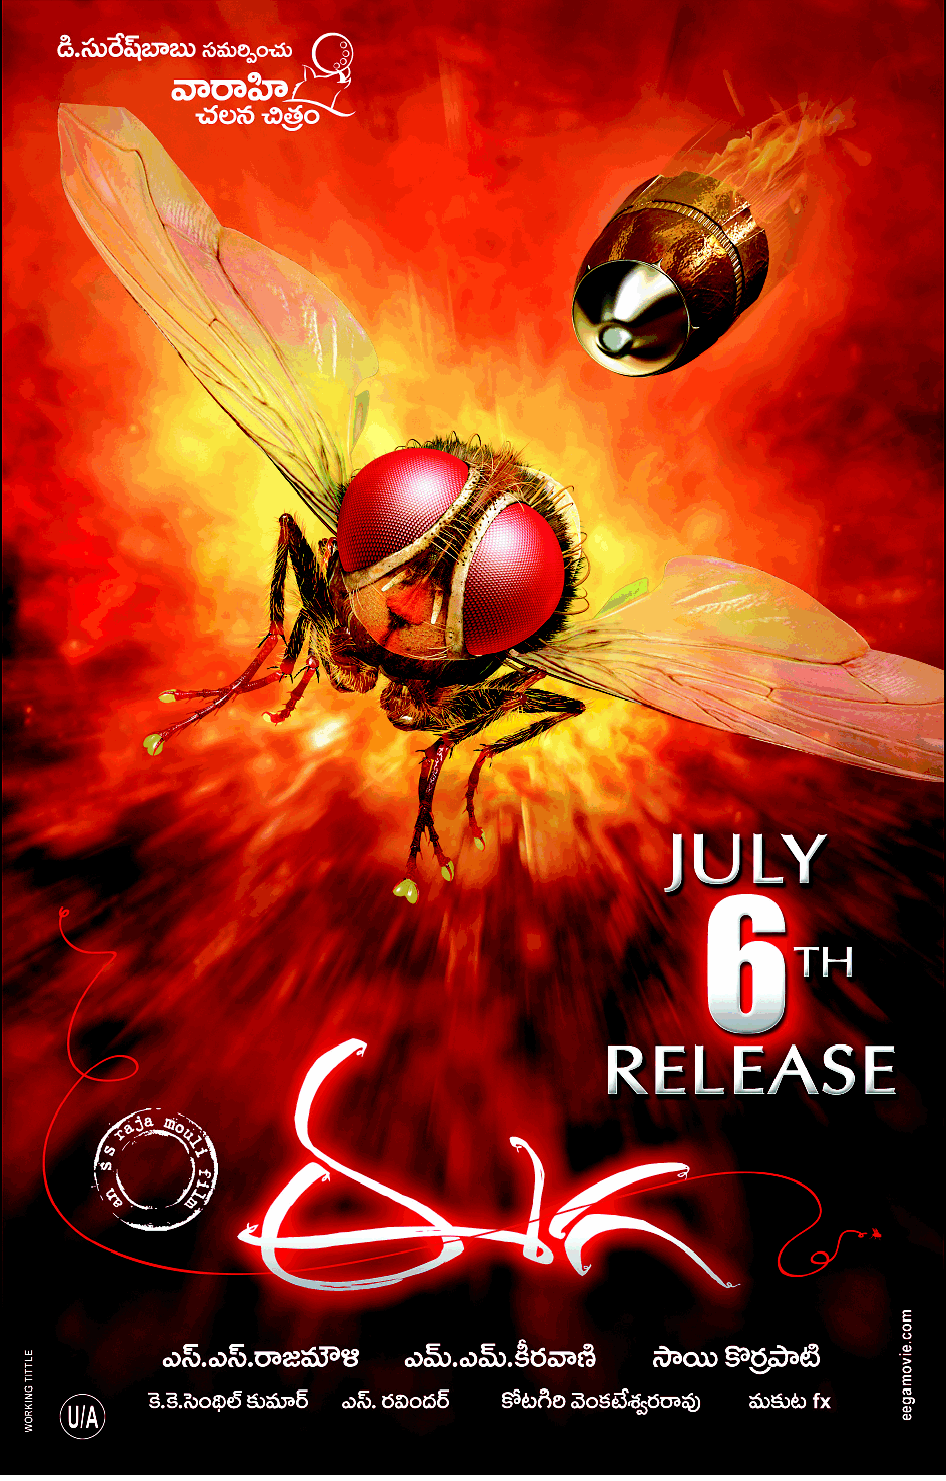 nani samantha in eega movie wallpapers - Eega Movie Promo[Hd] Song Konchemu Konchemu Nani